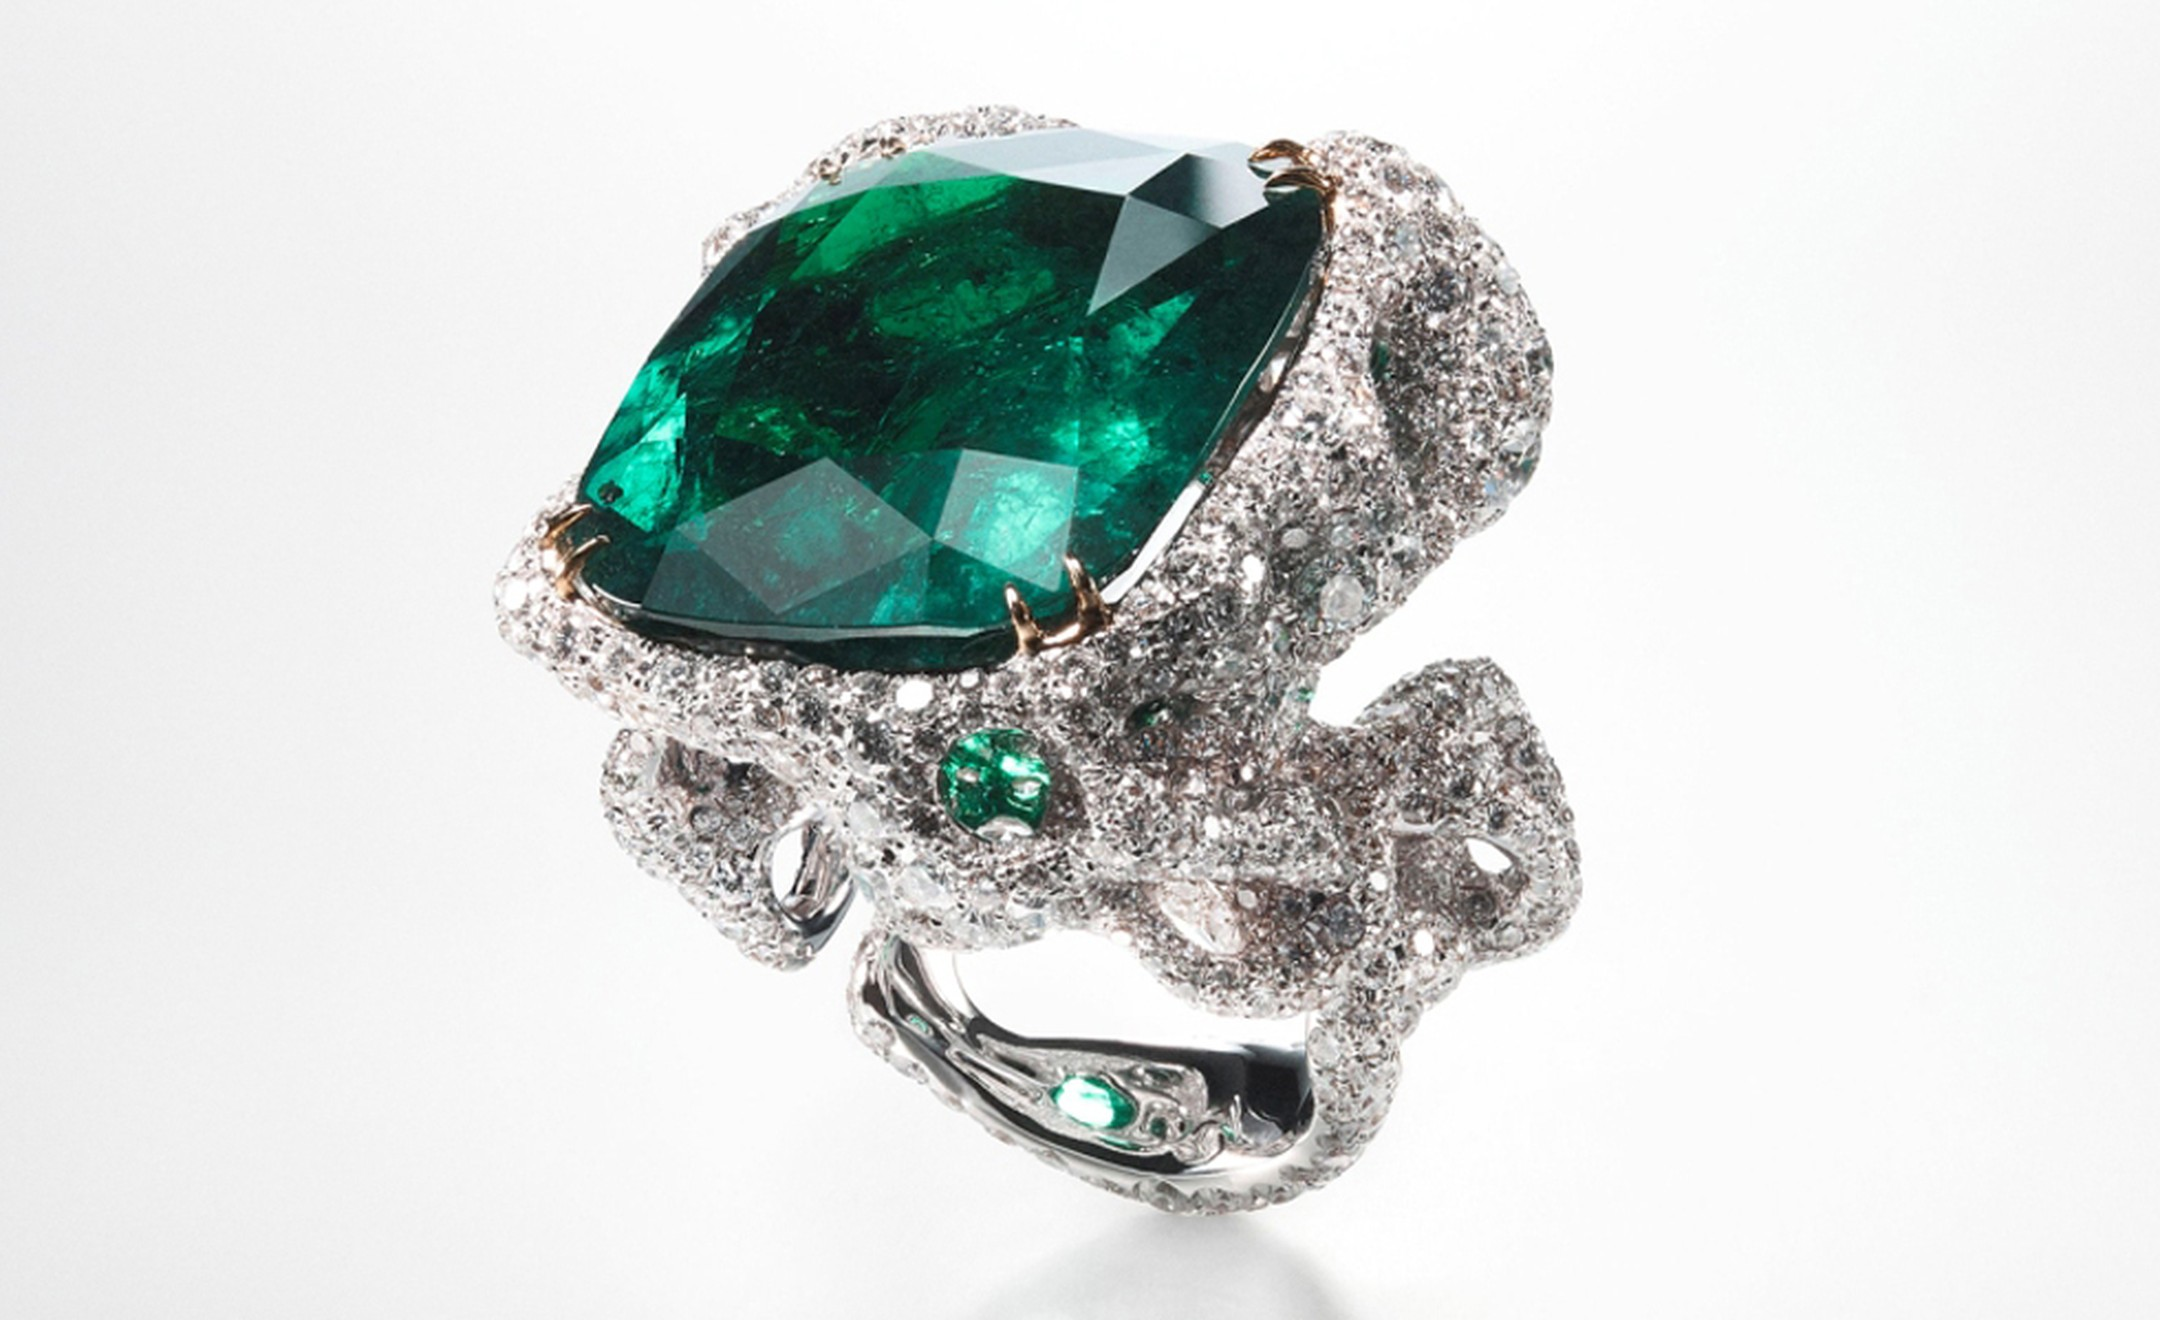 CINDY CHAO, The Art Jewel, Black Label Masterpiece Emerald City Ring with central emerald (44cts) highlighted by diamonds set in 18kt white gold